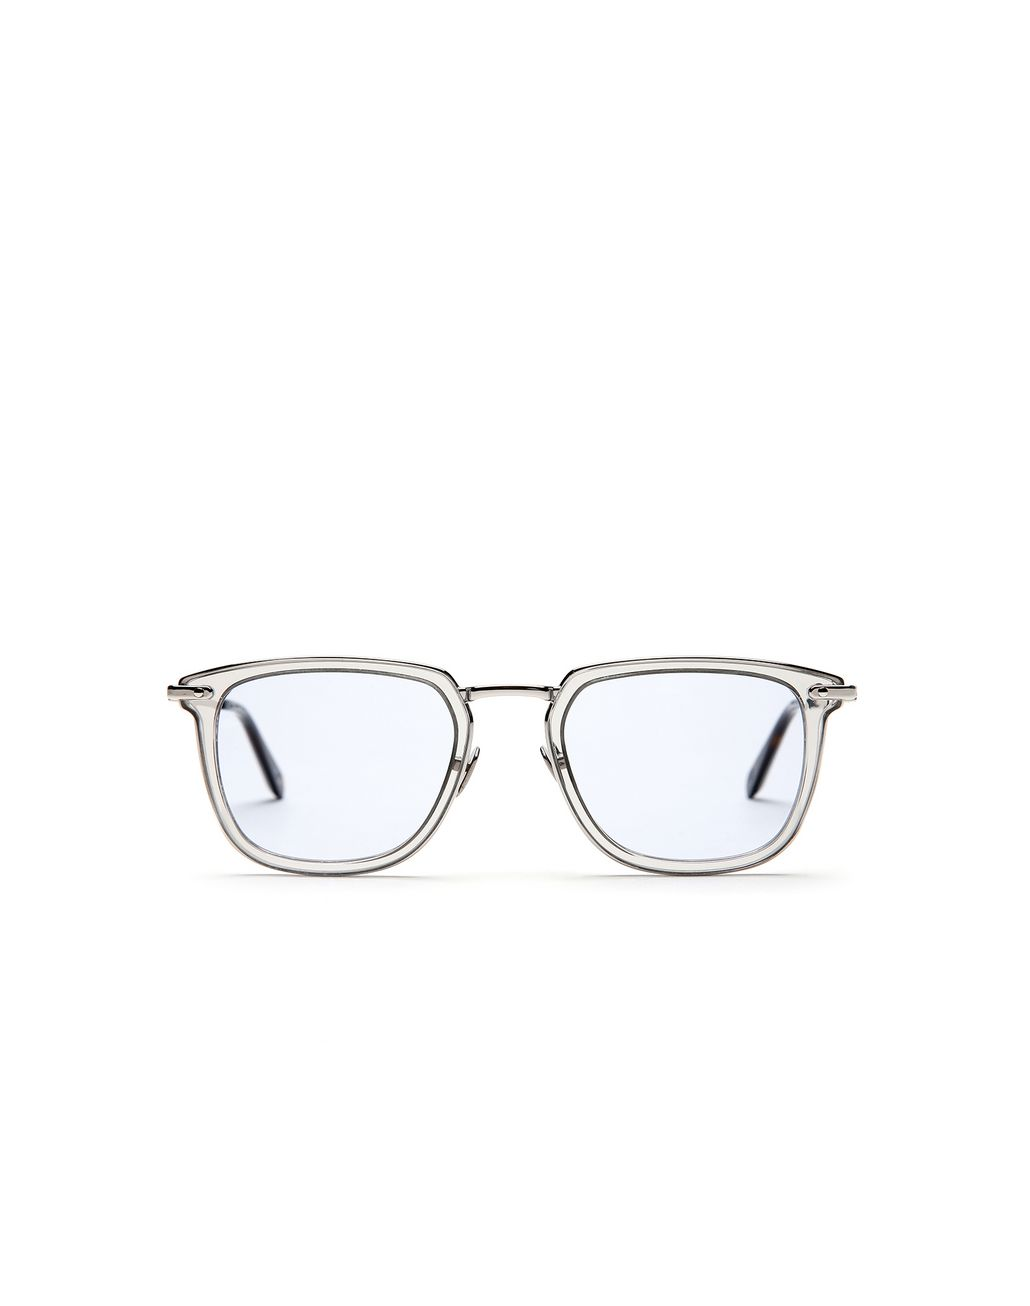 BRIONI Transparent Sunglasses with Light Blue Lenses  Sunglasses [*** pickupInStoreShippingNotGuaranteed_info ***] f